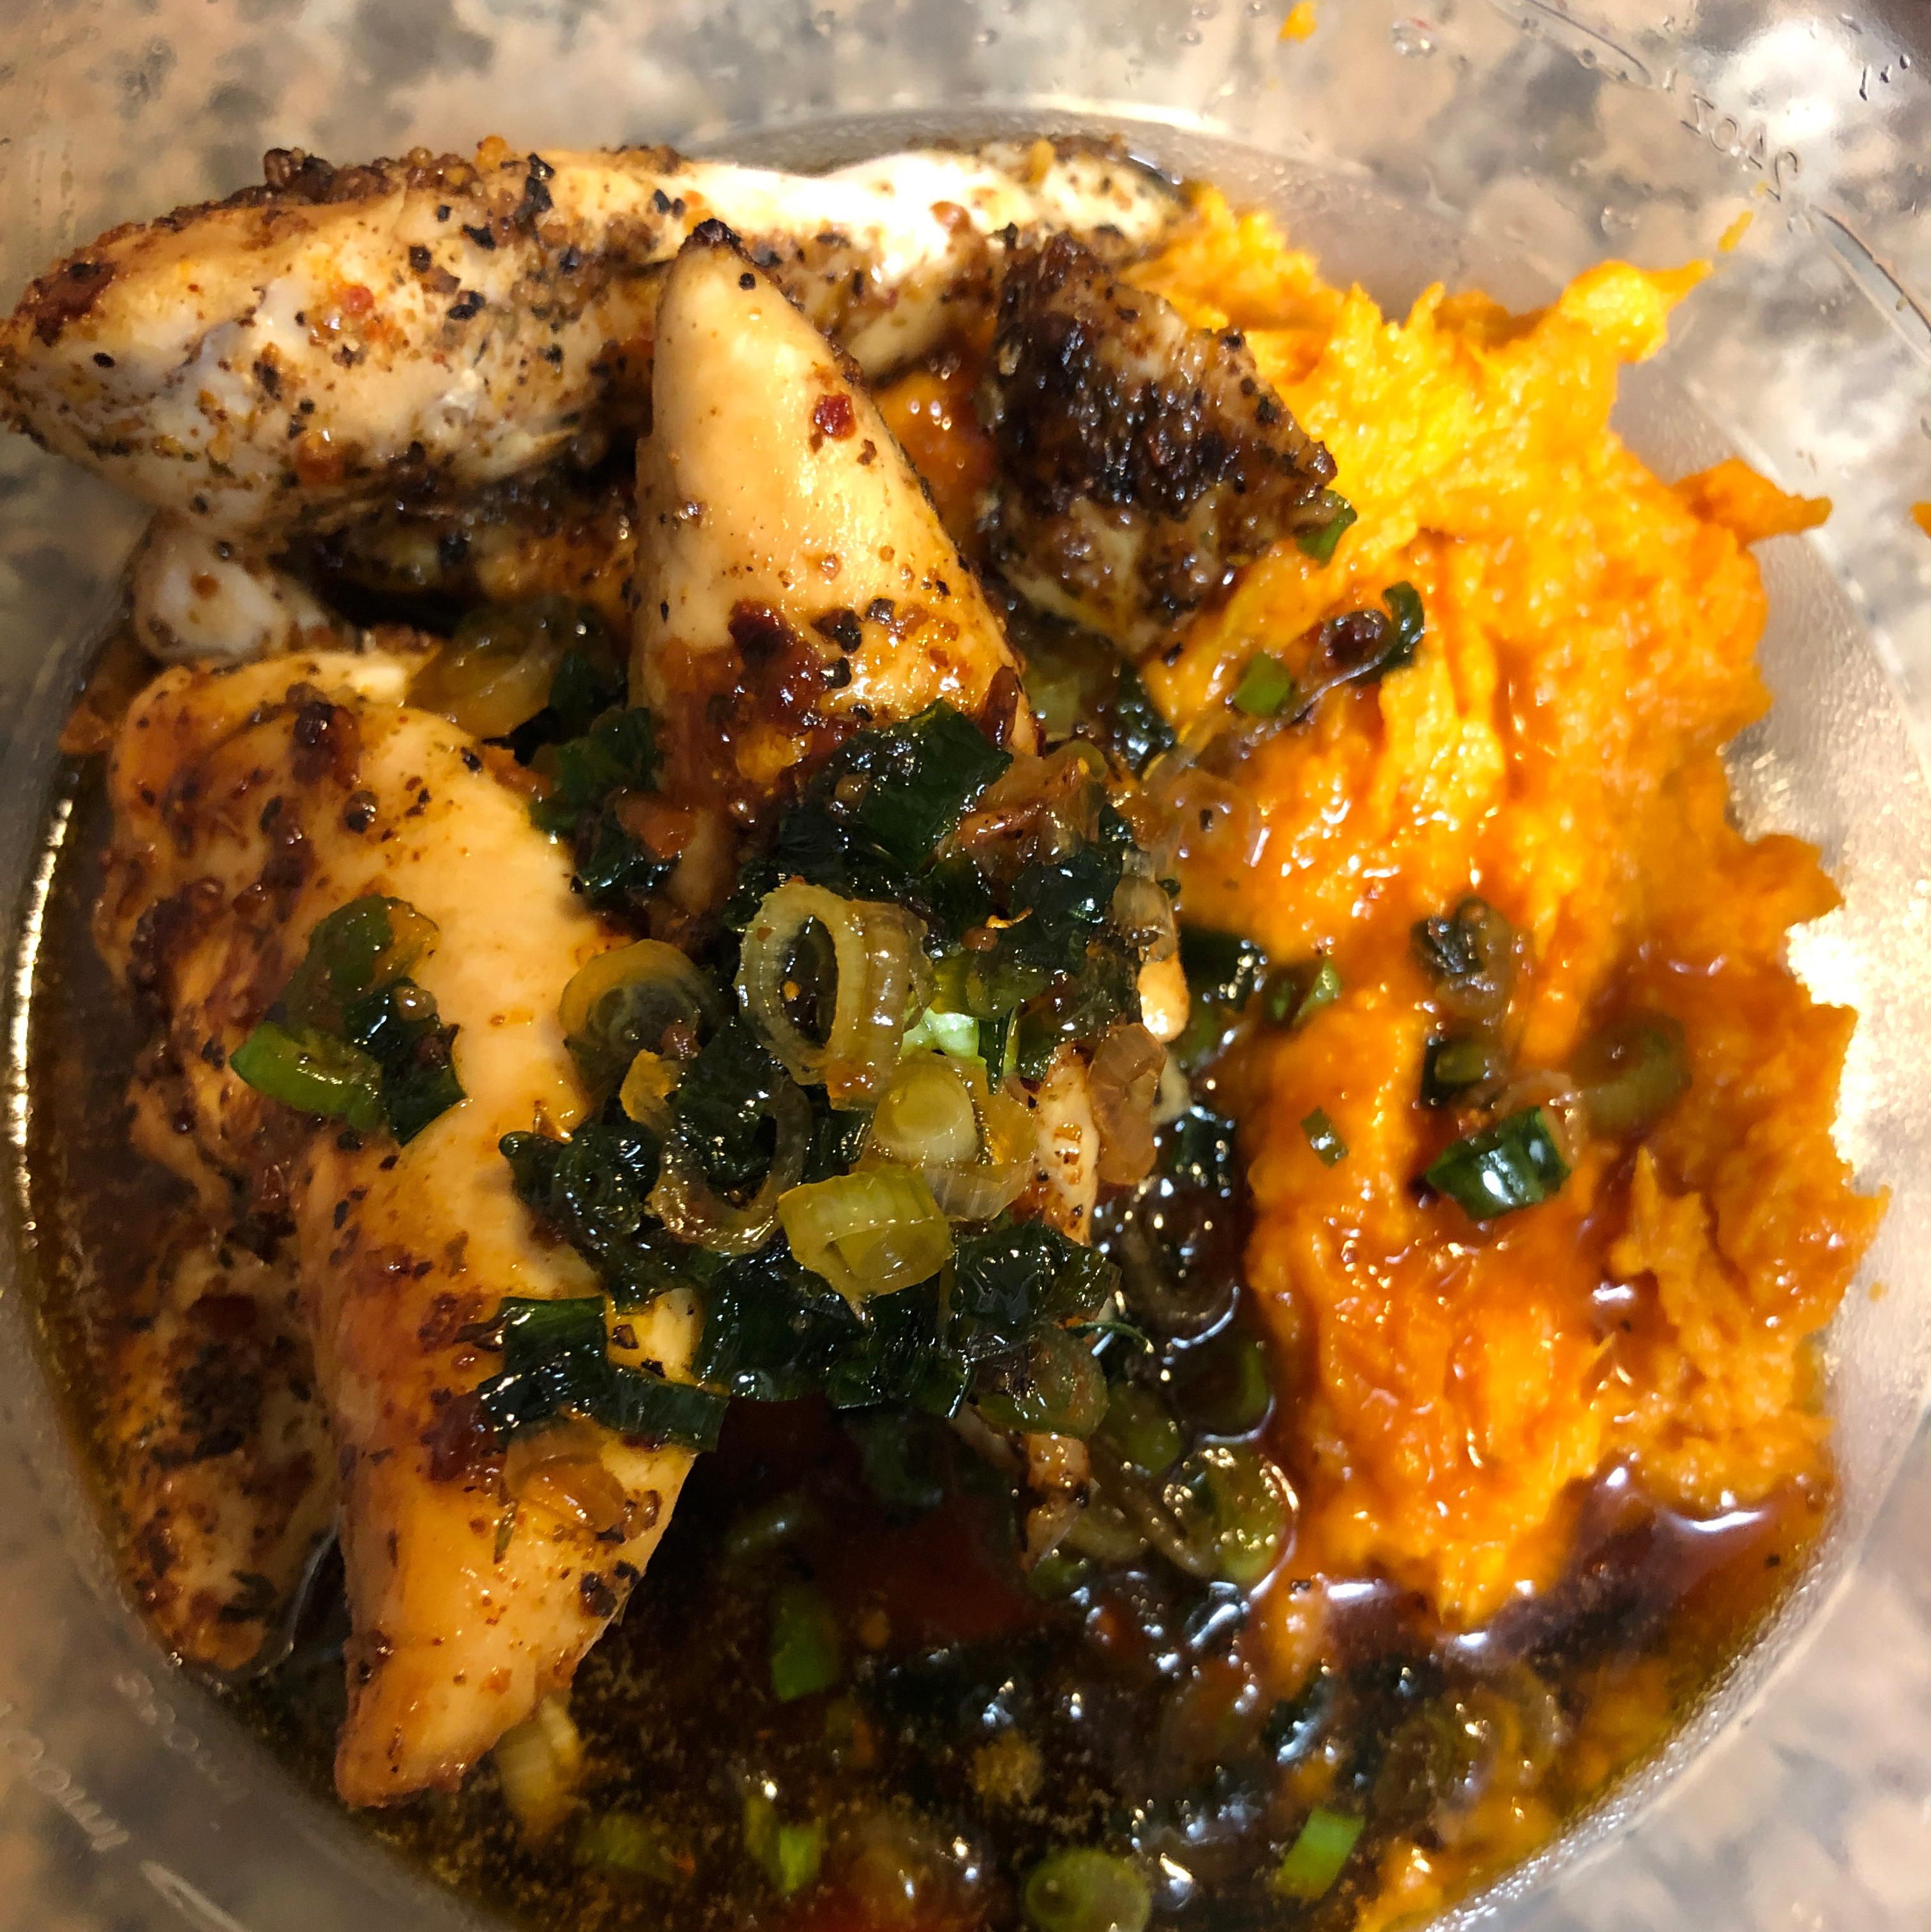 Maple Glazed Chicken with Sweet Potatoes Stuby